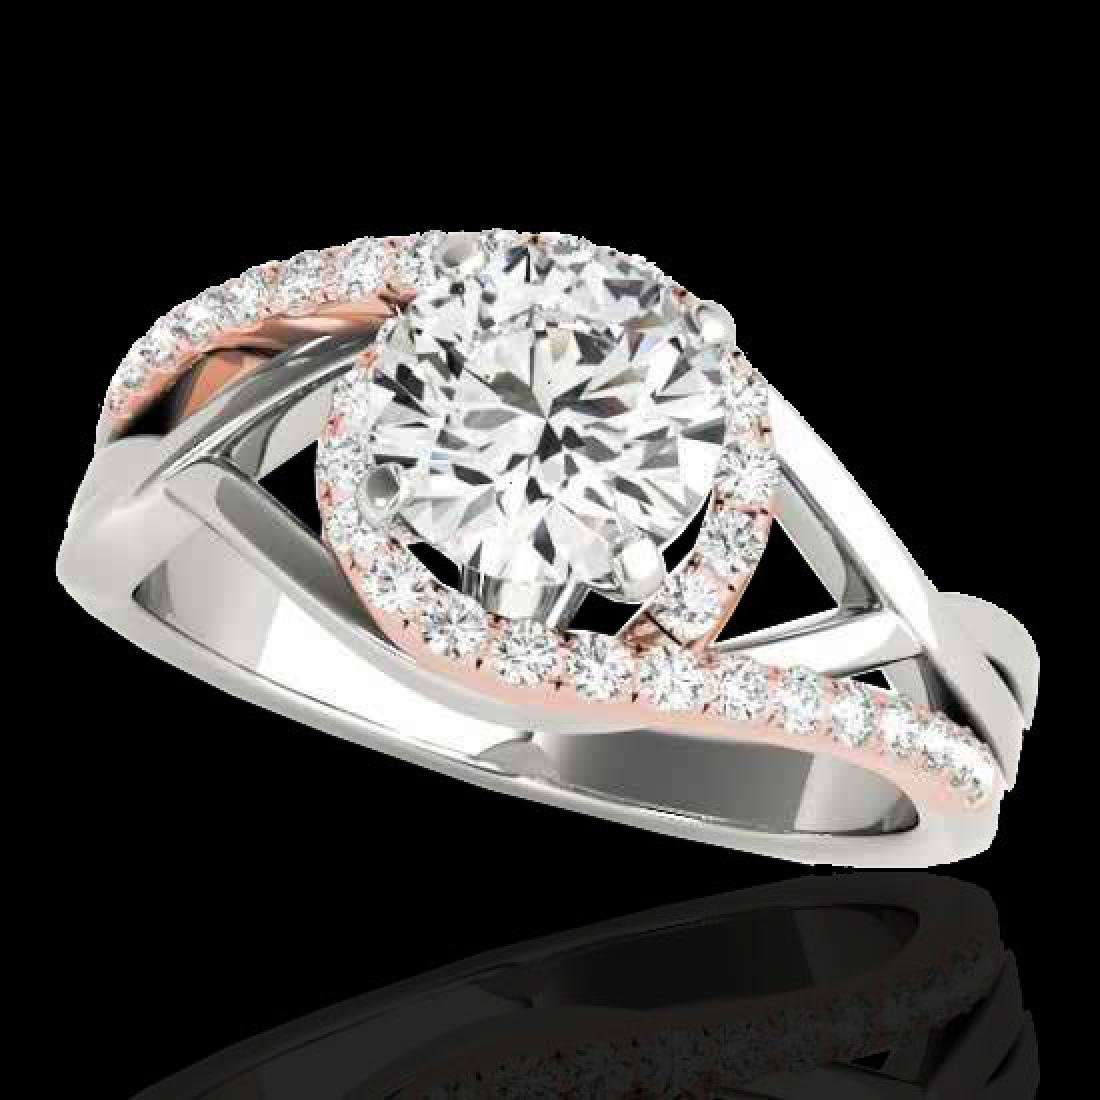 1.55 CTW H-SI/I Certified Diamond Bypass Solitaire Ring